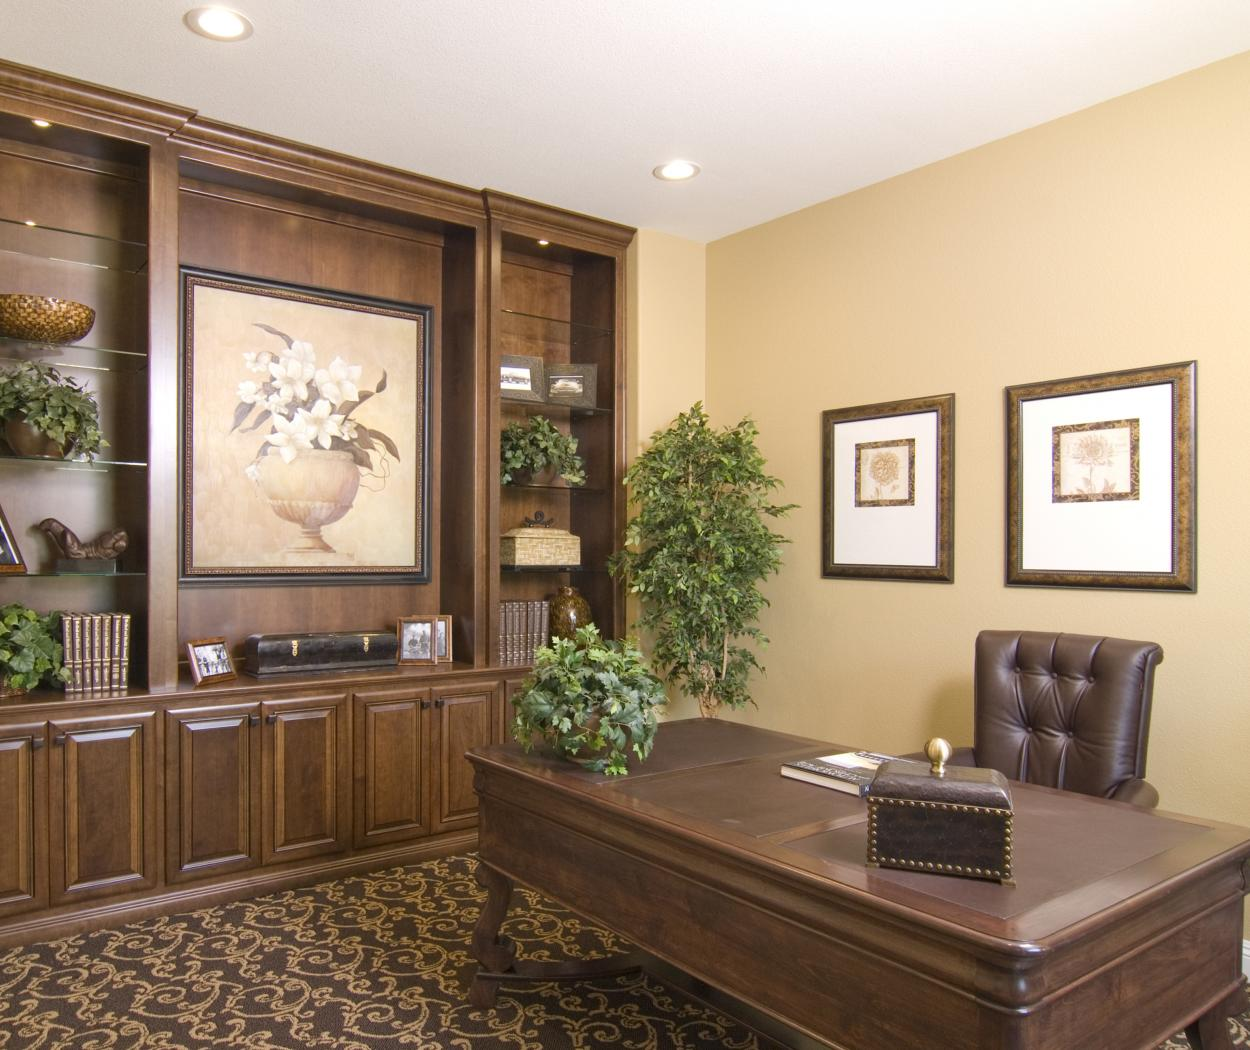 Beautiful Traditional Office Built-In with Glass Shelves and Oil Rubbed Bronze Pulls